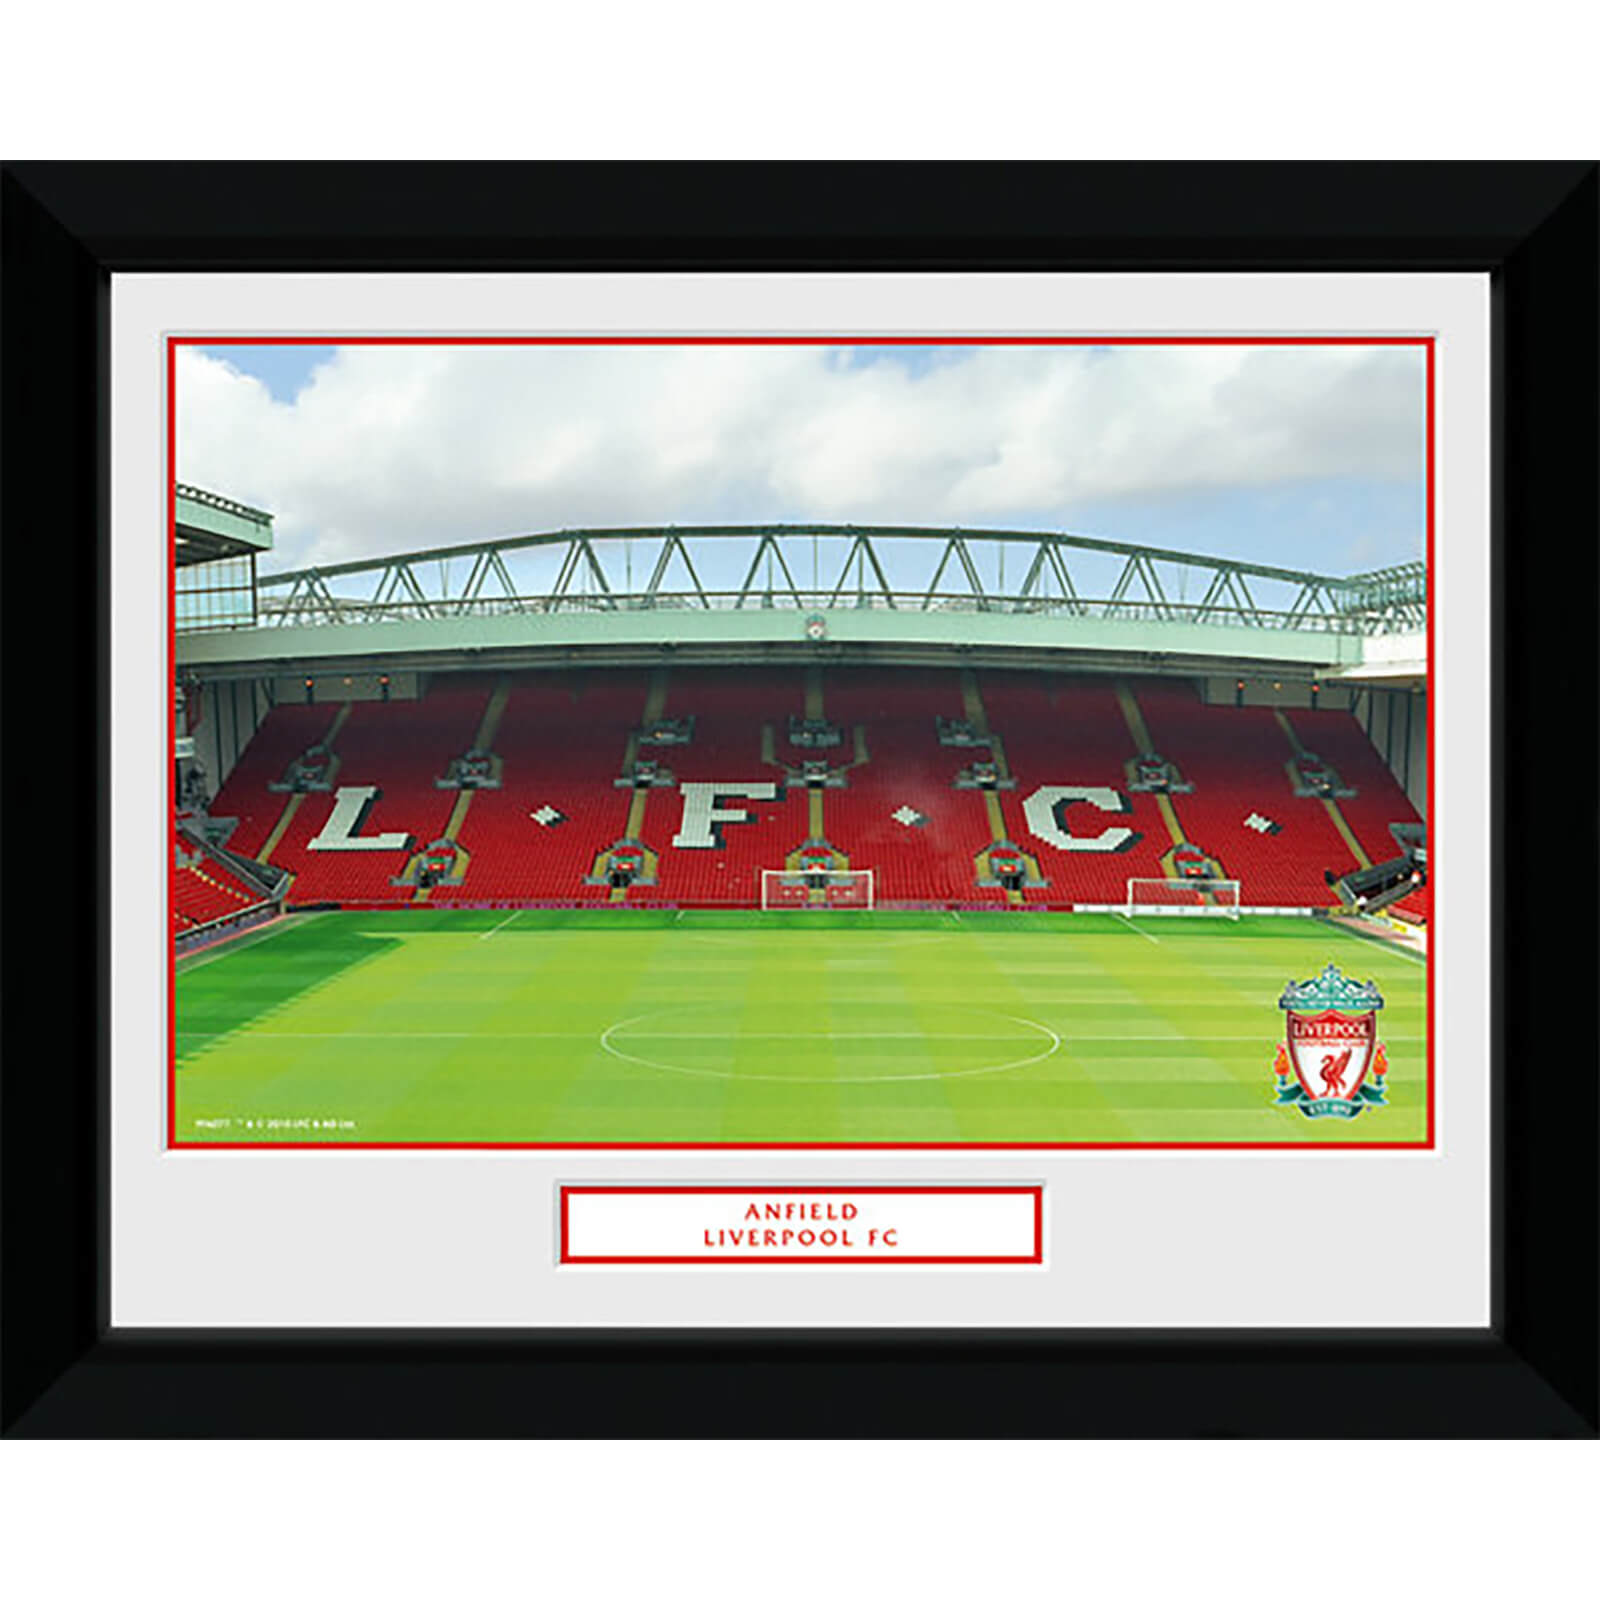 "Liverpool Anfield - 8"""" x 6"""" Framed Photographic"